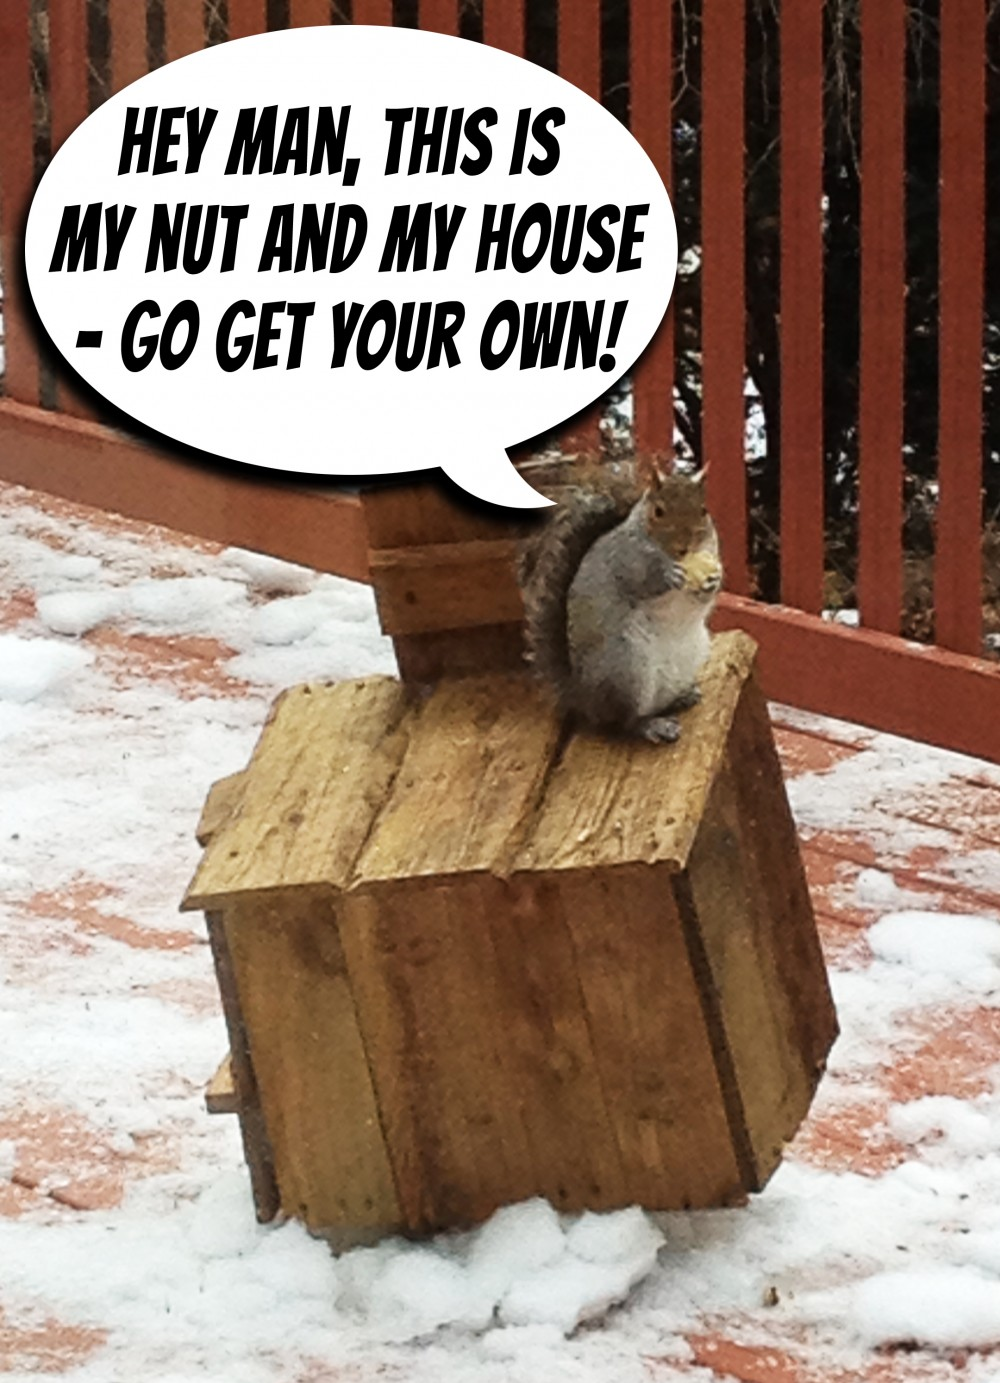 Biggest Animal On Earth >> Things to do with old pallets: The Rustic Squirrel Hotel | Tumblehome Learning - Science ...